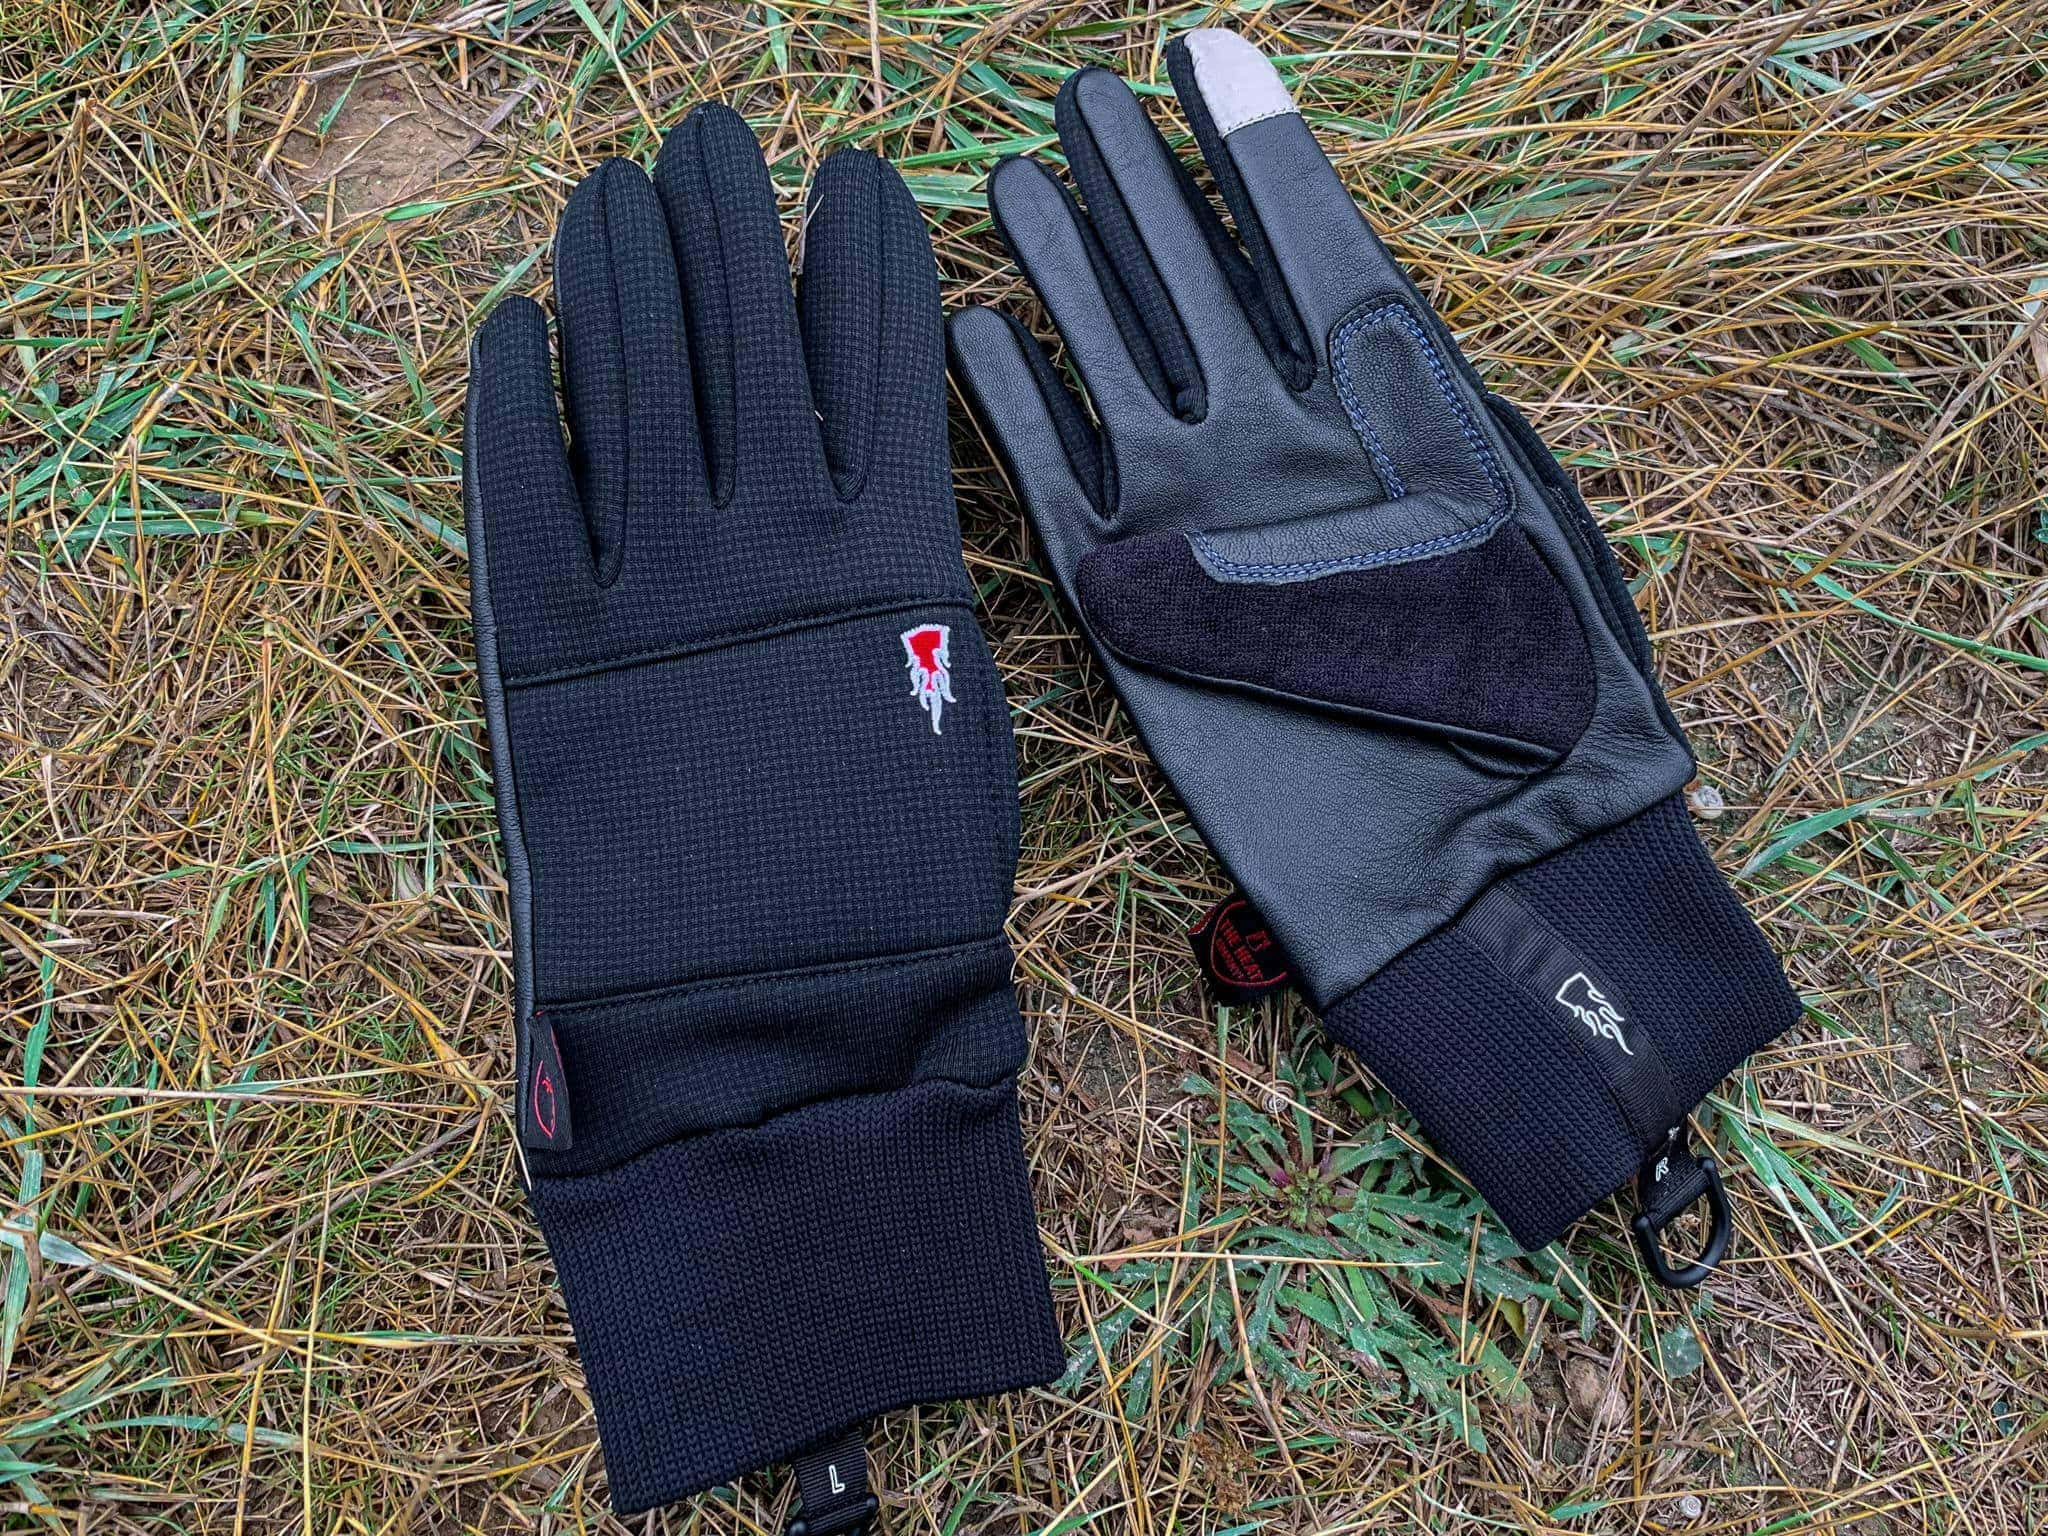 Francesco Gola Review The Heat Company Durable Liner Pro New Gloves 2